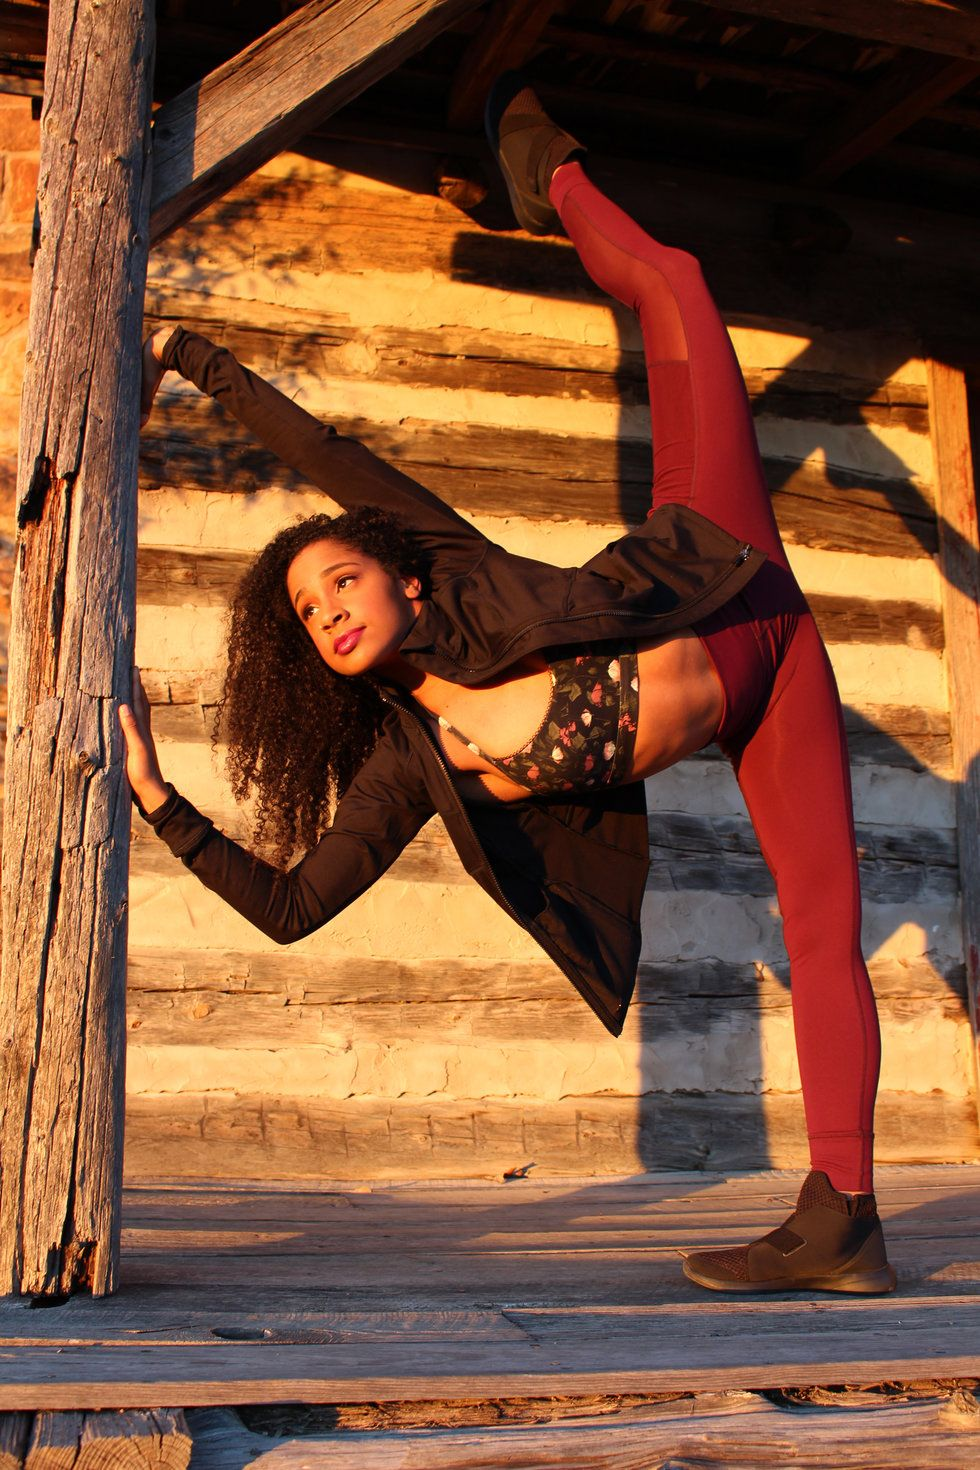 Moore in a pench\u00e9, leaning against a support beam of a rustic, wooden building. She is wearing maroon leggings, a floral crop top and a black jacket.